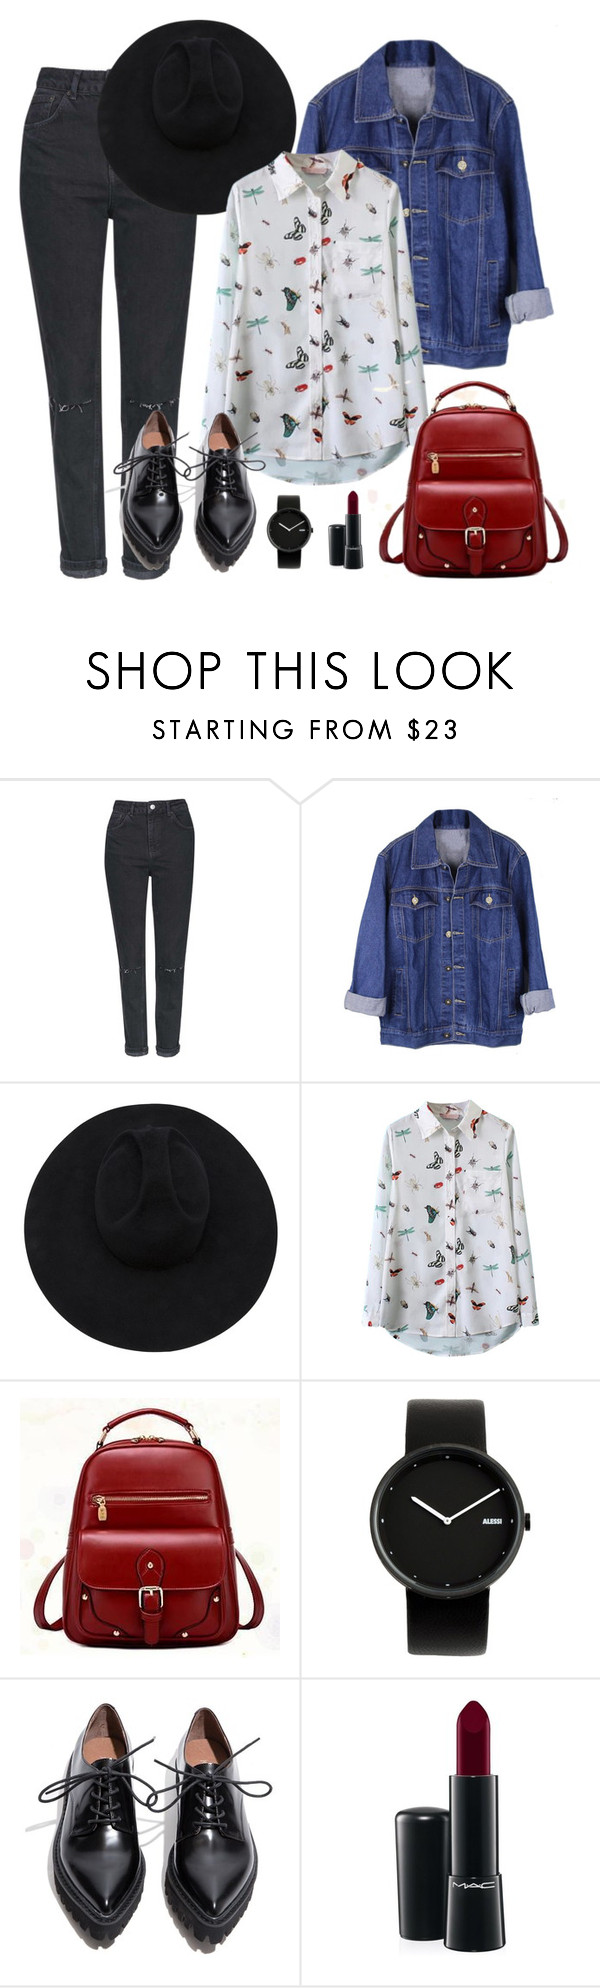 """""""First meeting with Zico"""" by berrie95 on Polyvore featuring Topshop, Gladys Tamez Millinery, BeiBaoBao, Alessi, Jeffrey Campbell, MAC Cosmetics, blockb and Zico"""